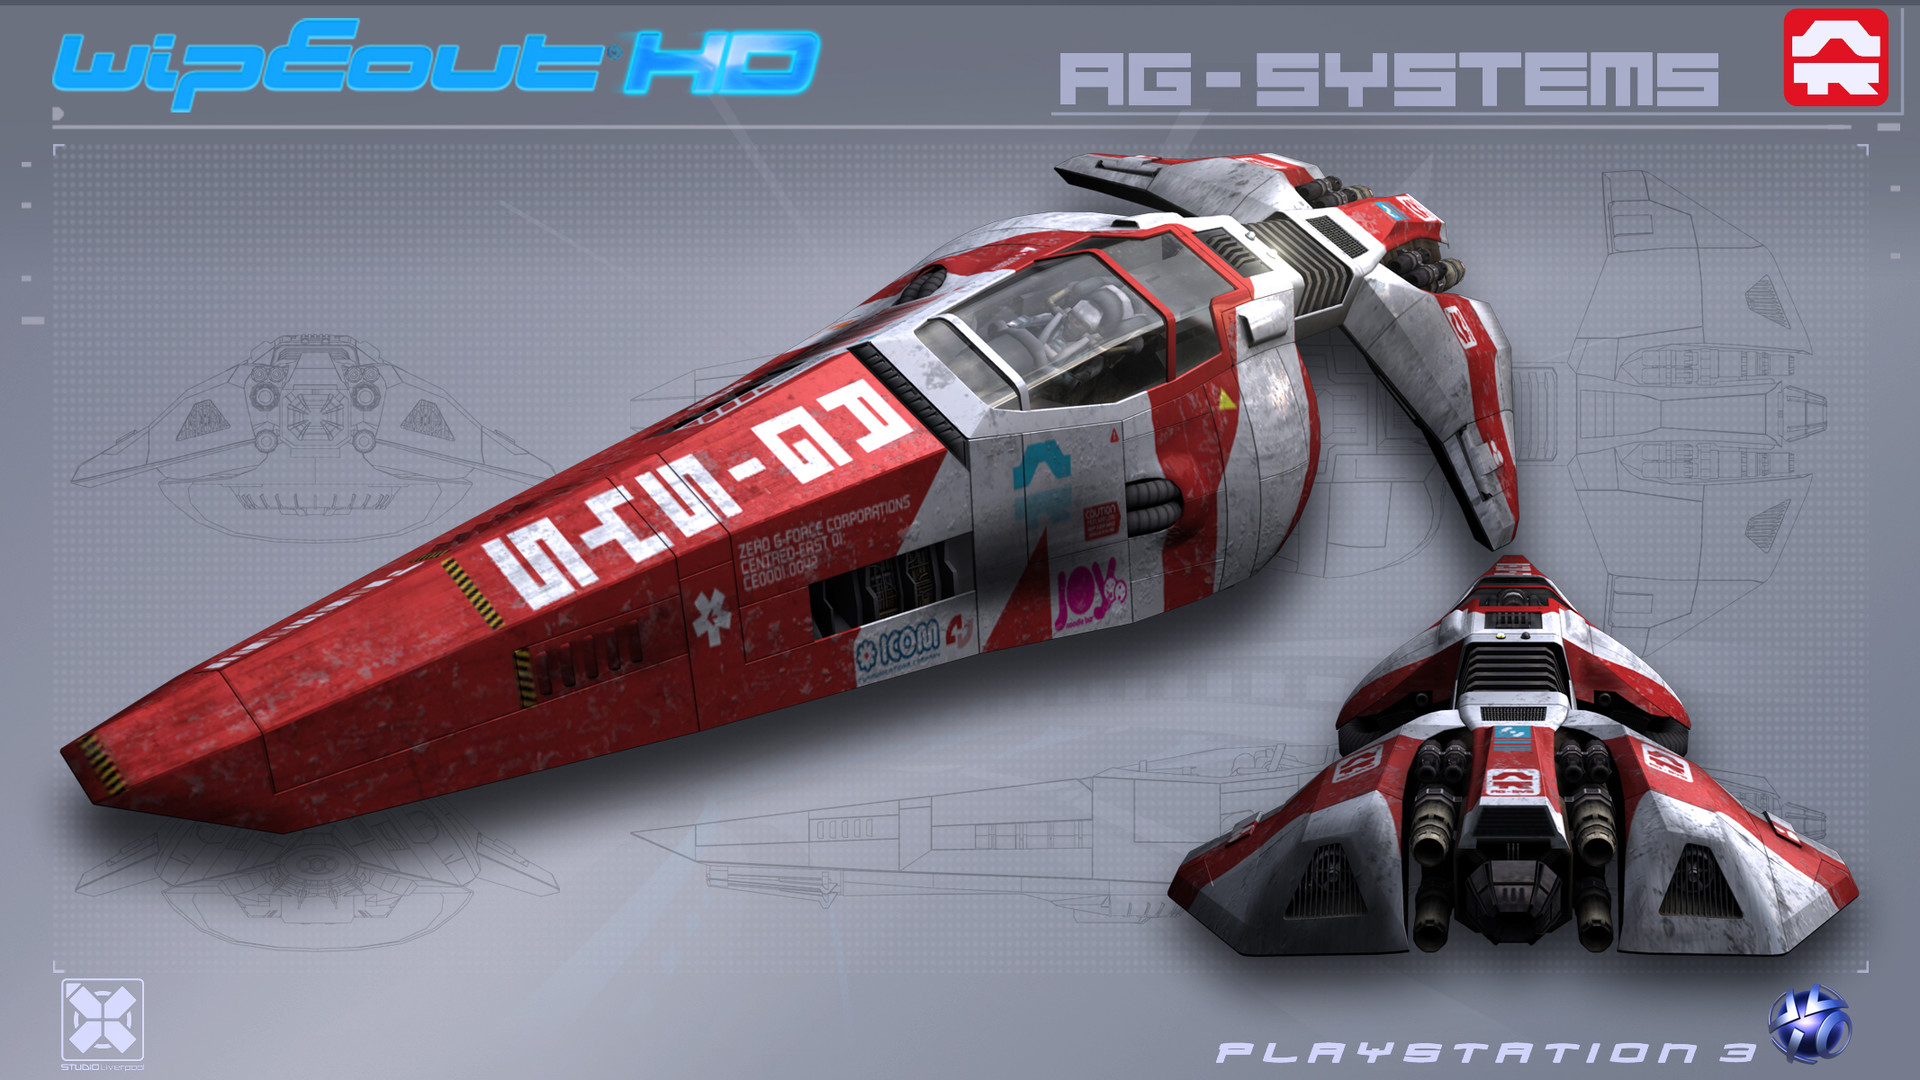 Dean ashley hr wipeout hd agsystems